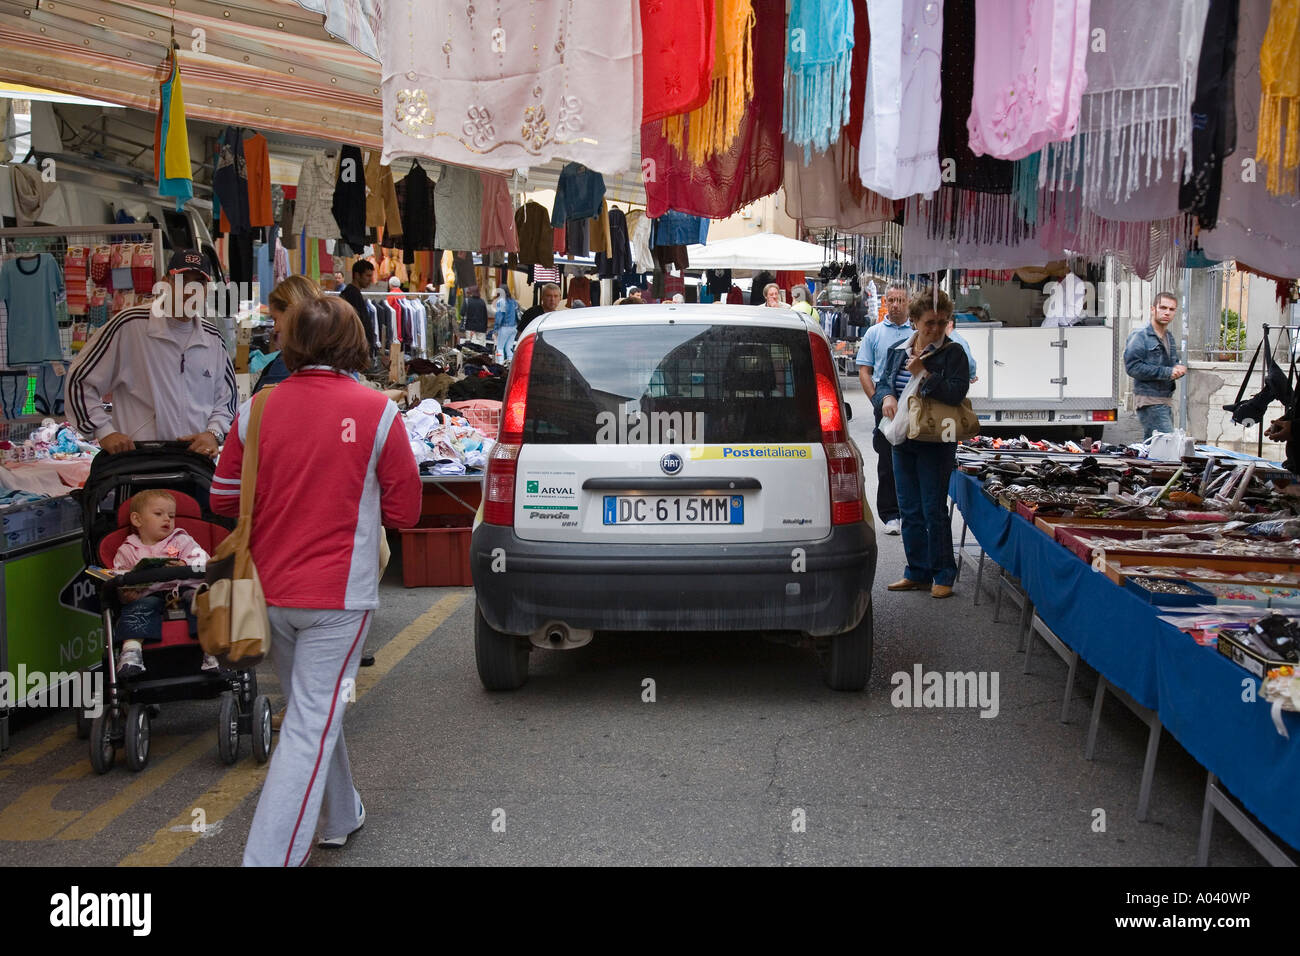 Italian postal vehicle drives between booths on crowded street during weekly market day Marsciano Italy PG - Stock Image